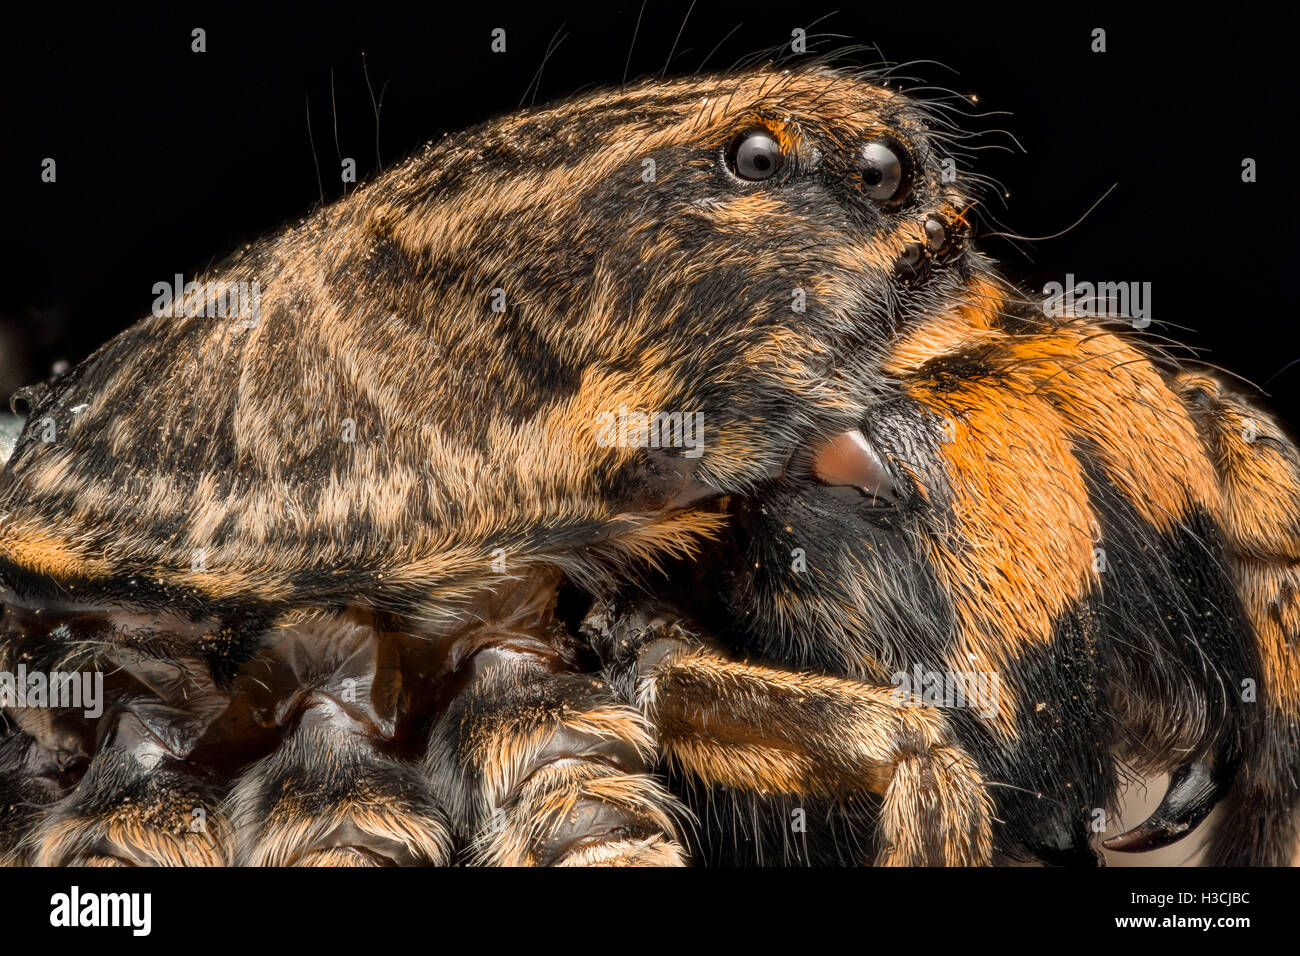 Extreme magnification - Wolf Spider side view - Stock Image